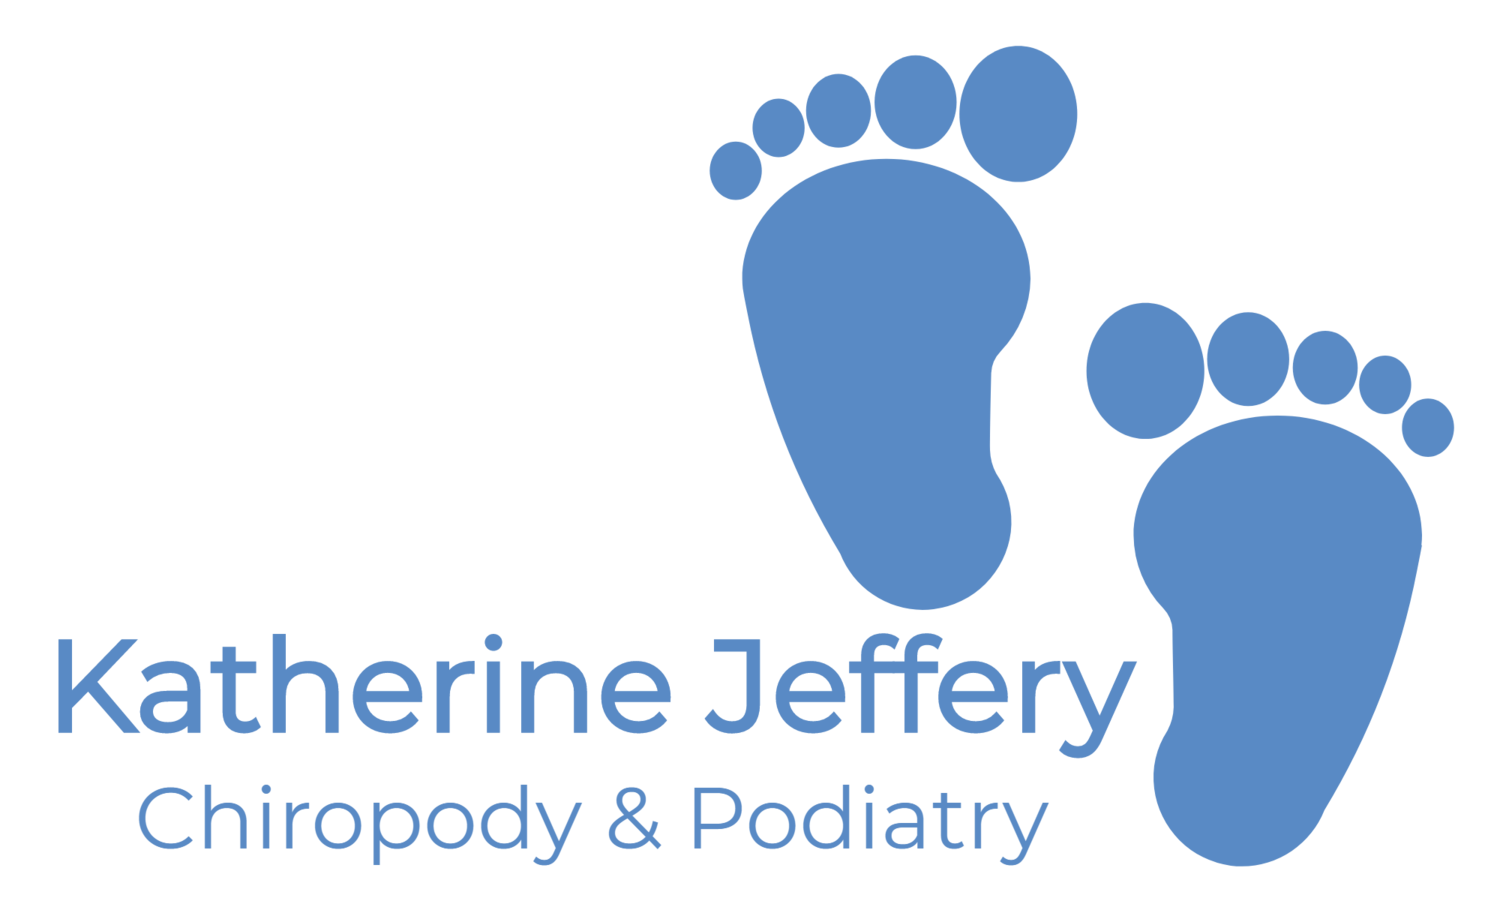 Katherine Jeffery Chiropody & Podiatry